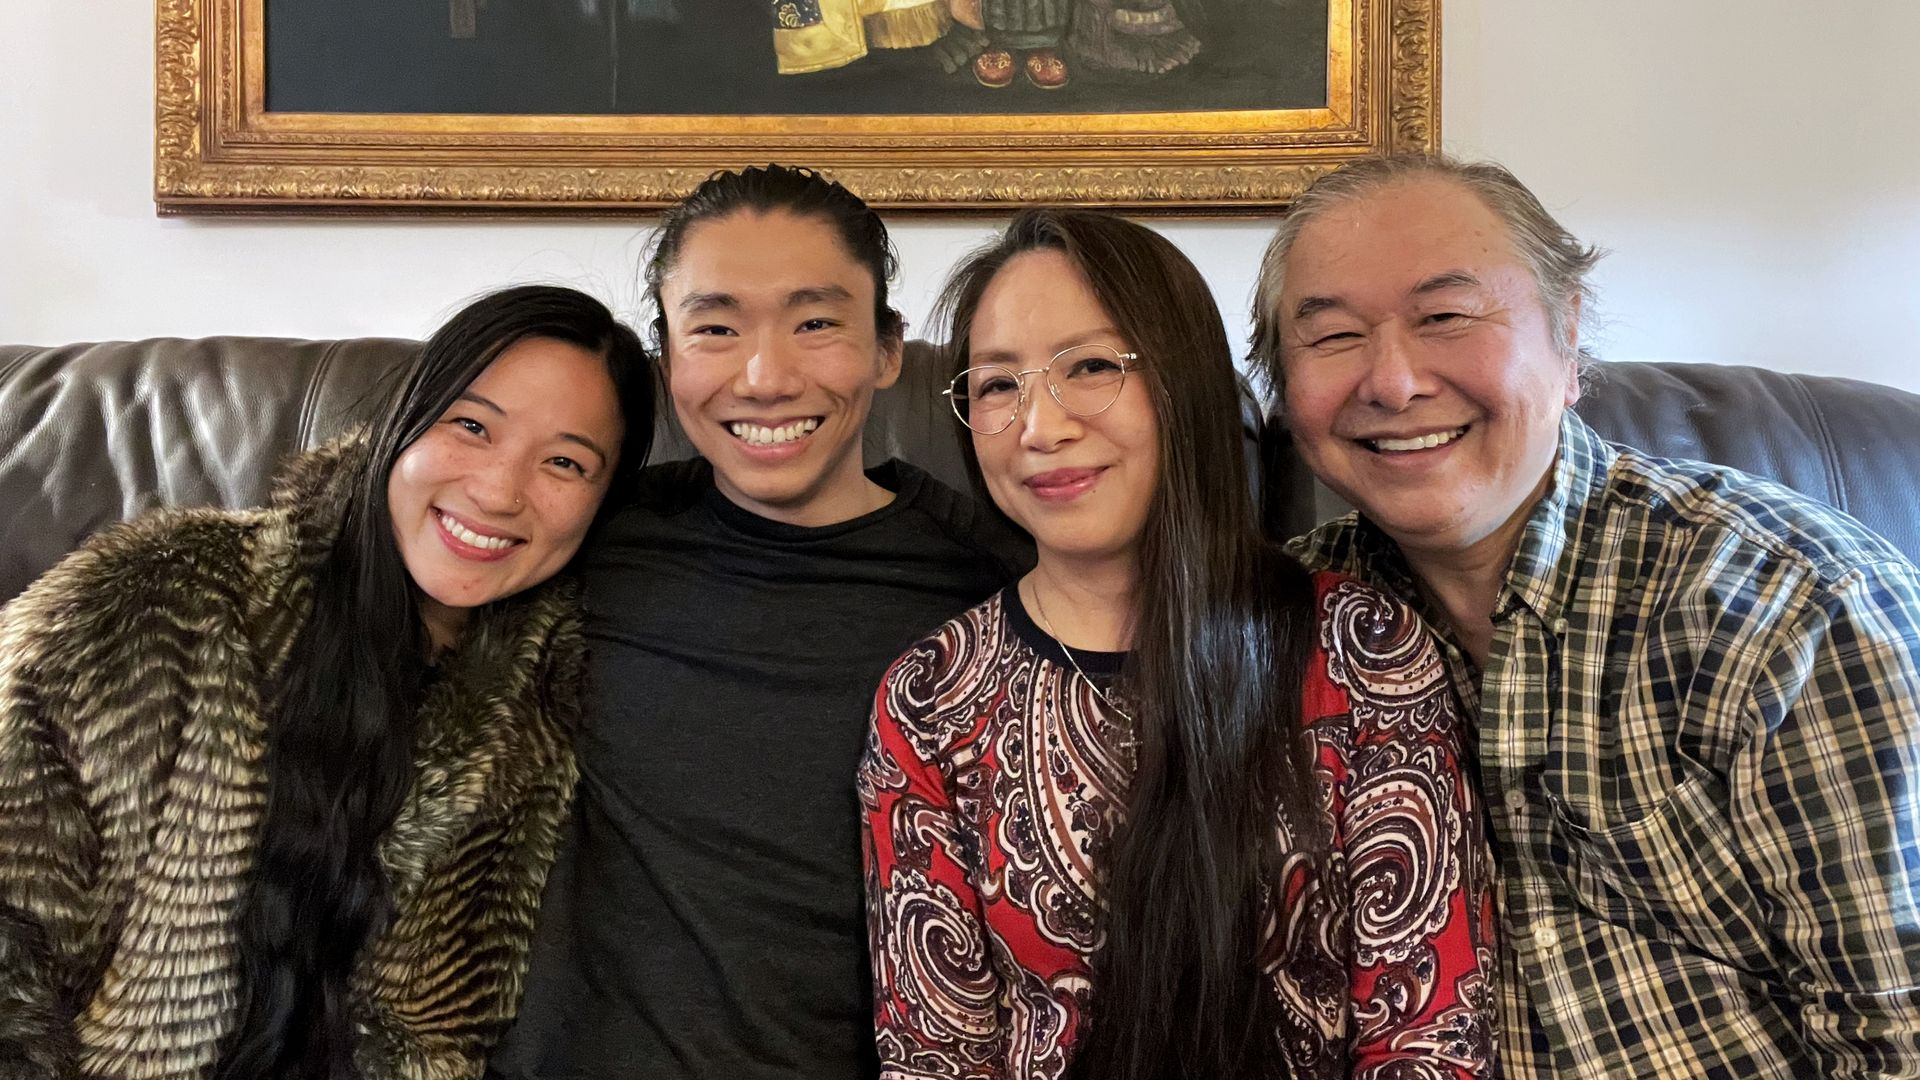 Joseph Lam And Family - Parents Are Human